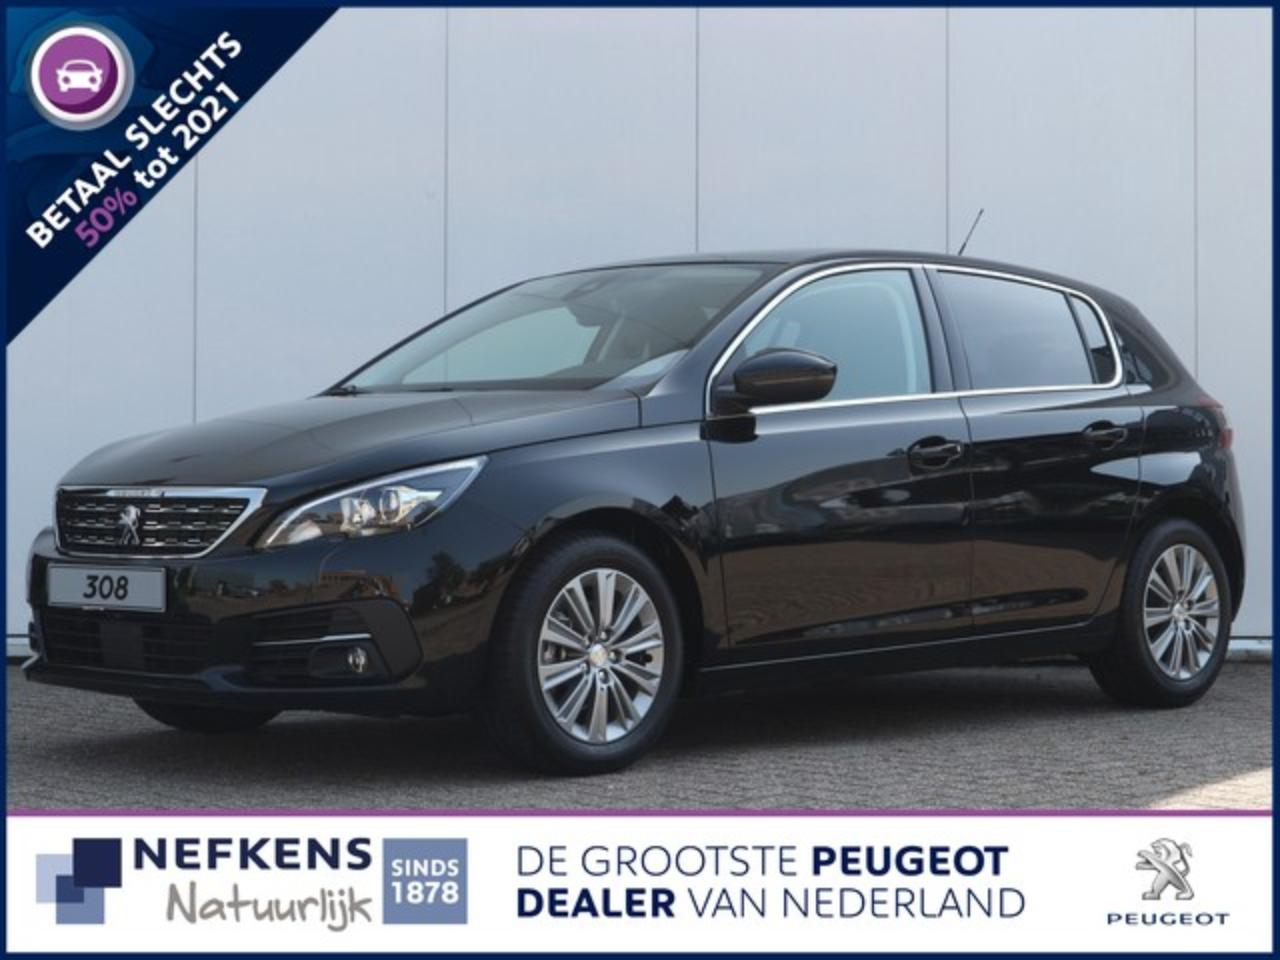 Peugeot 308 1.2 130 pk automaat Blue Lease Premium Direct uit